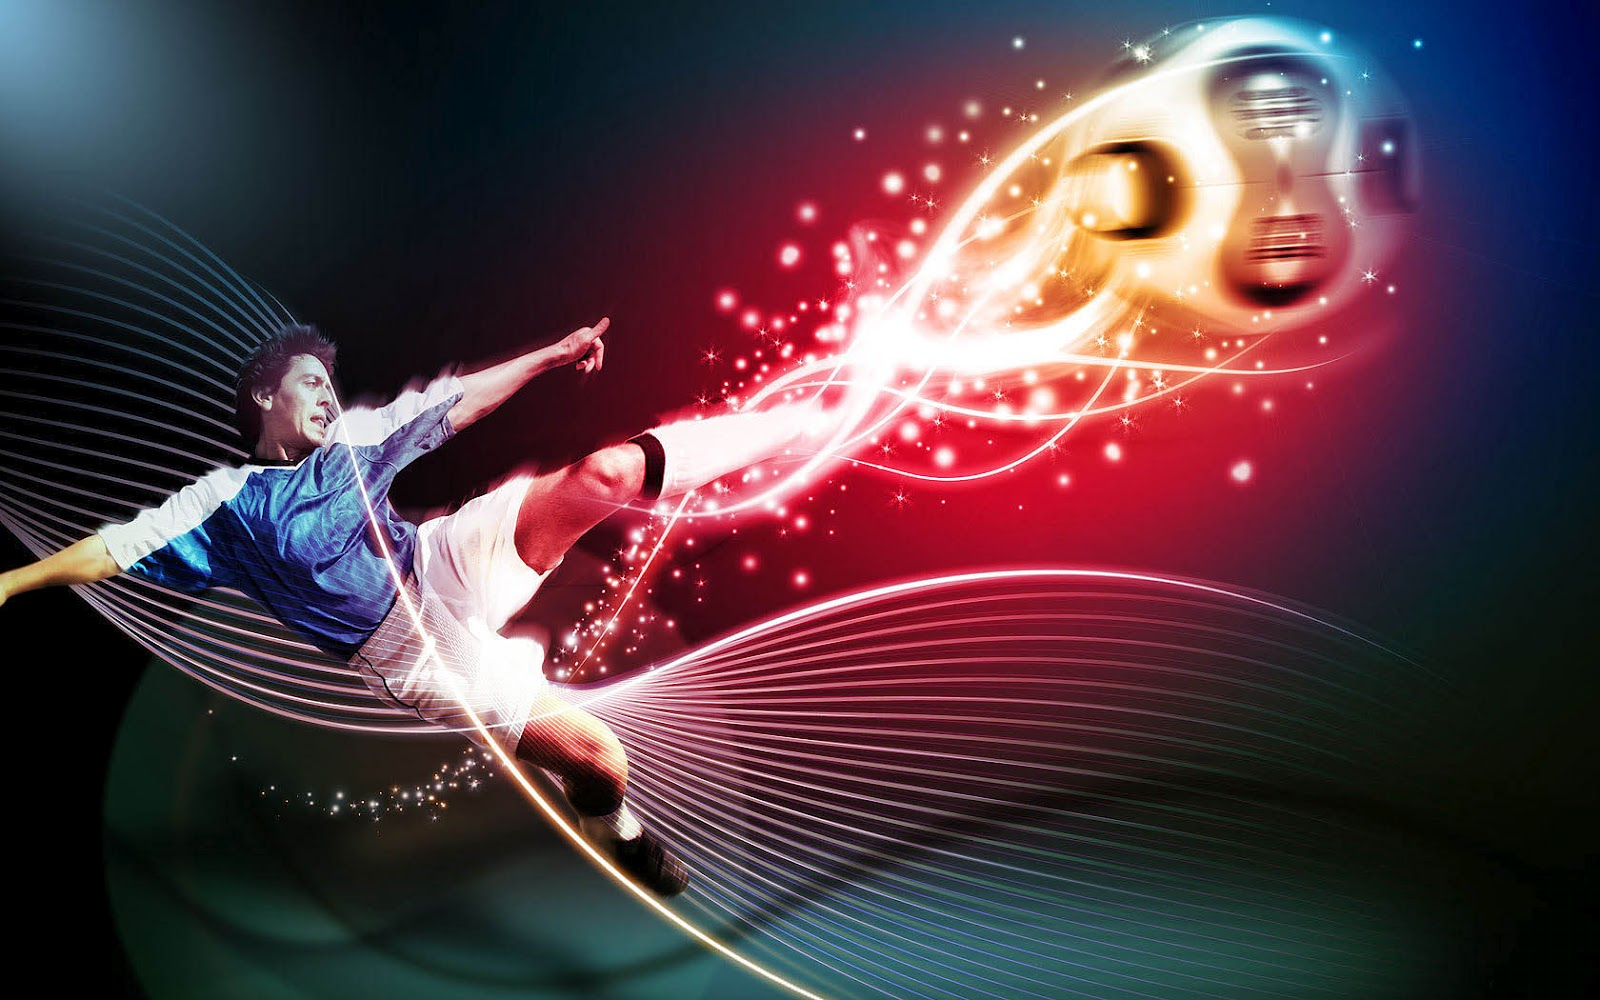 sports wallpapers free download